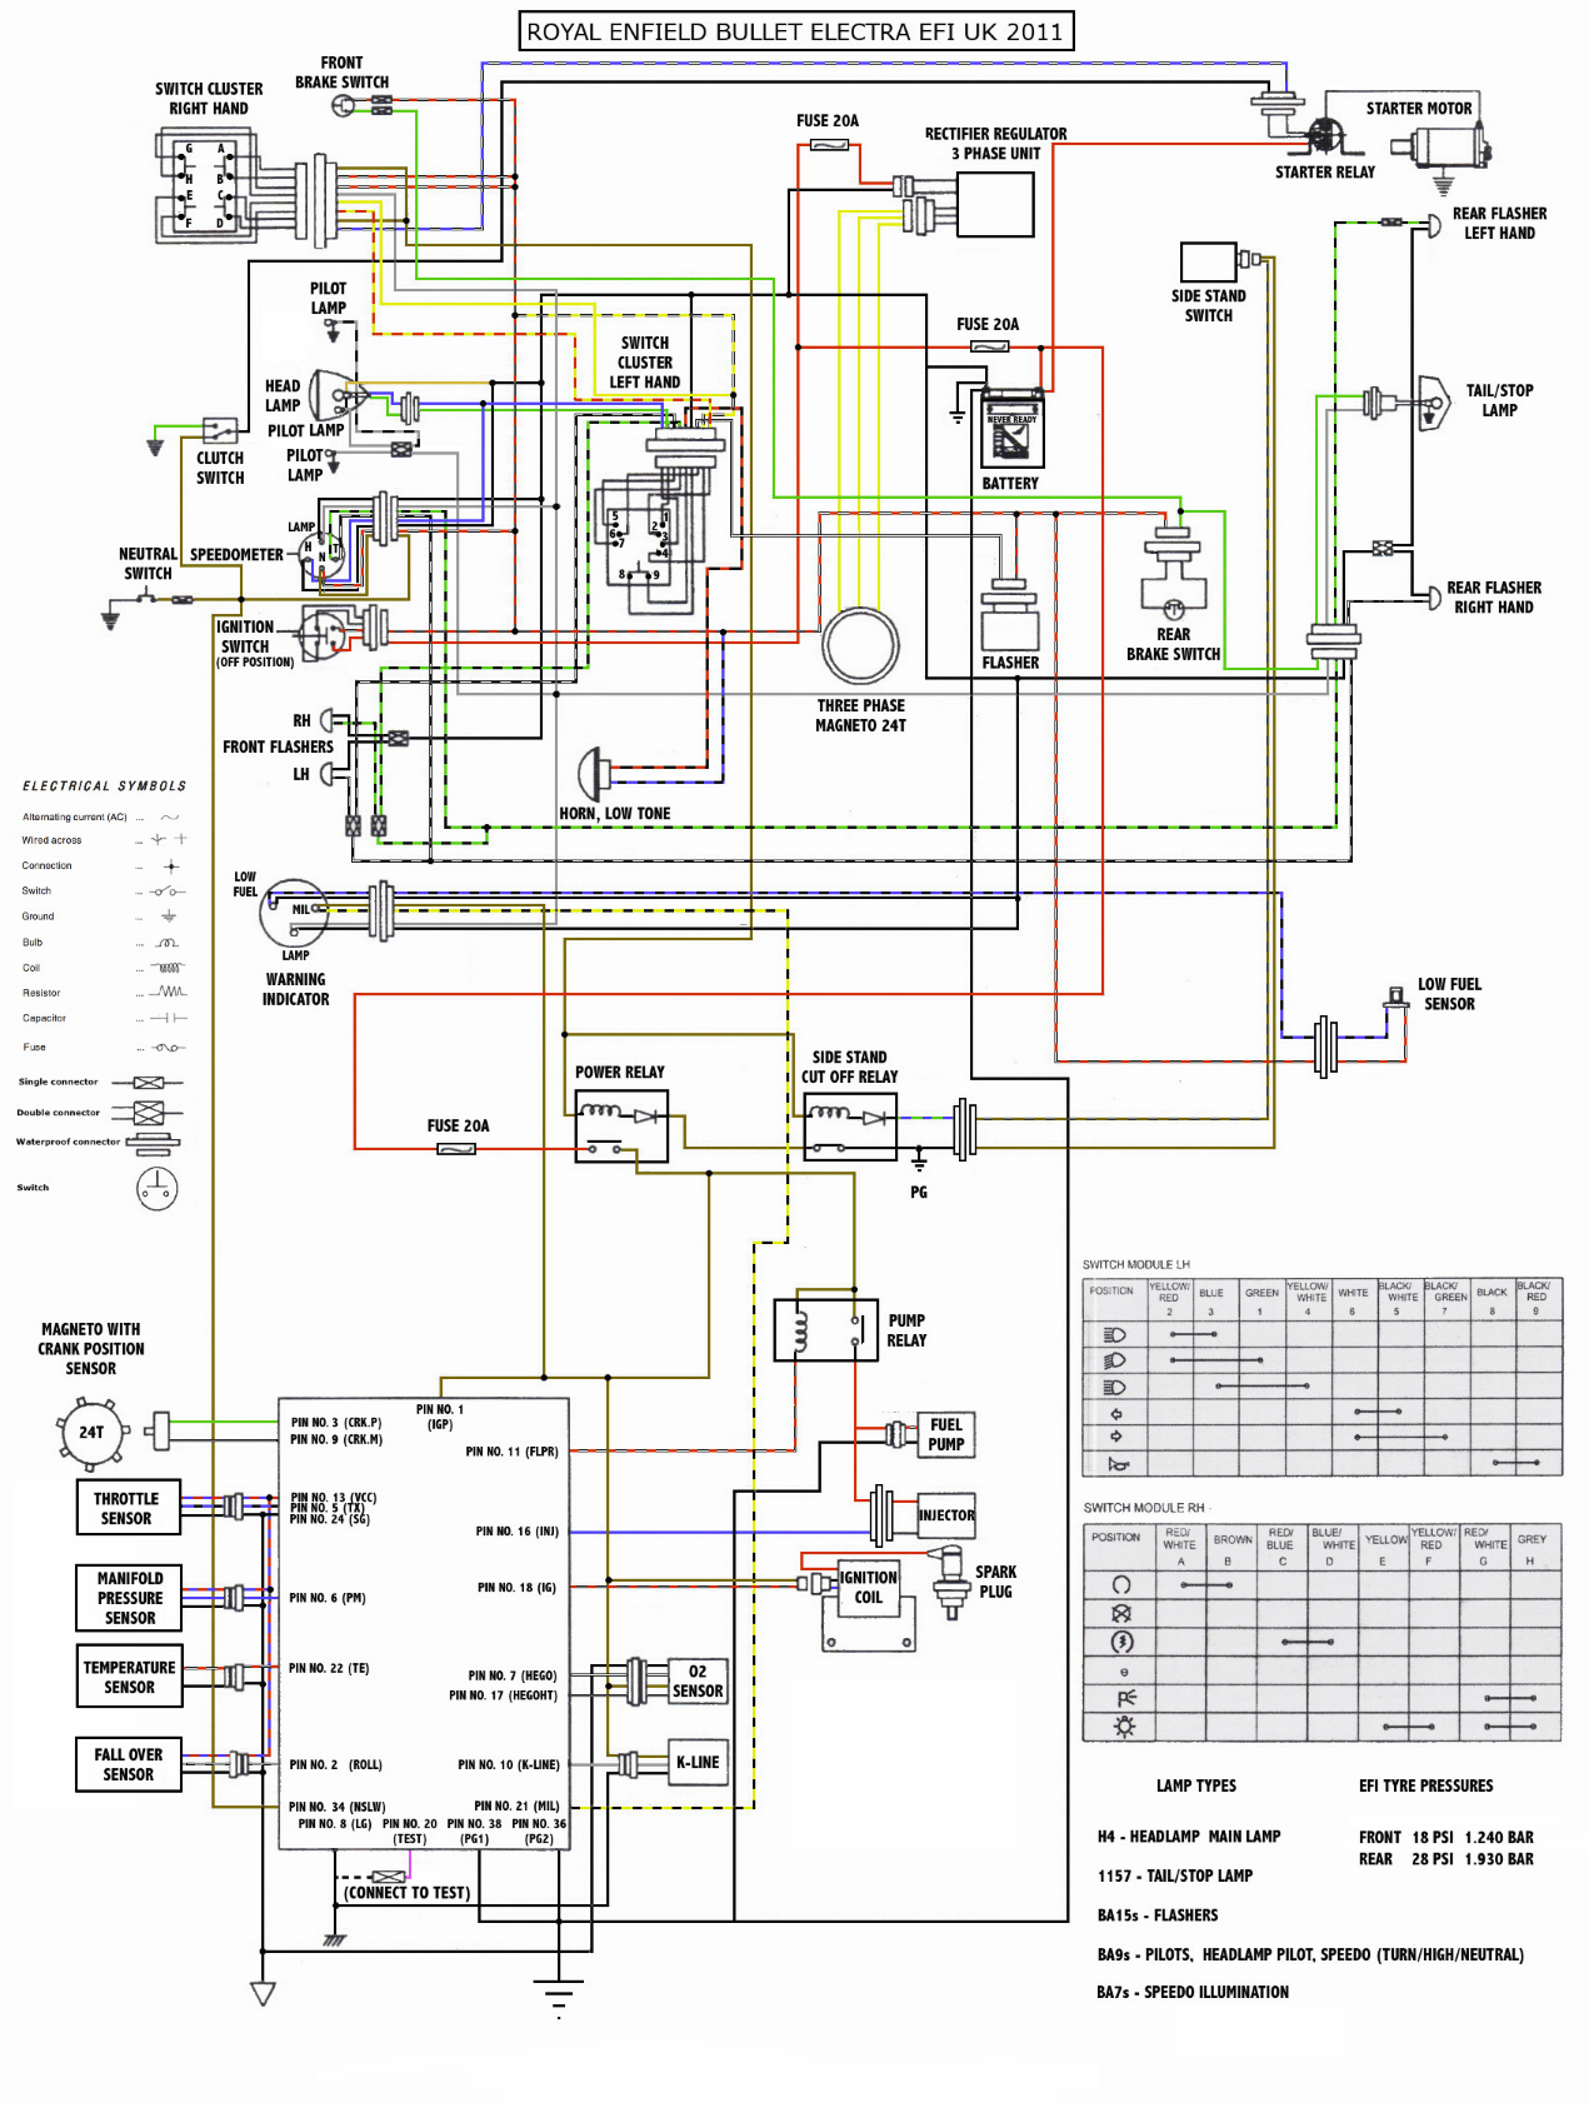 EFI workshop chart royal enfield resources electric wiring diagram at readyjetset.co